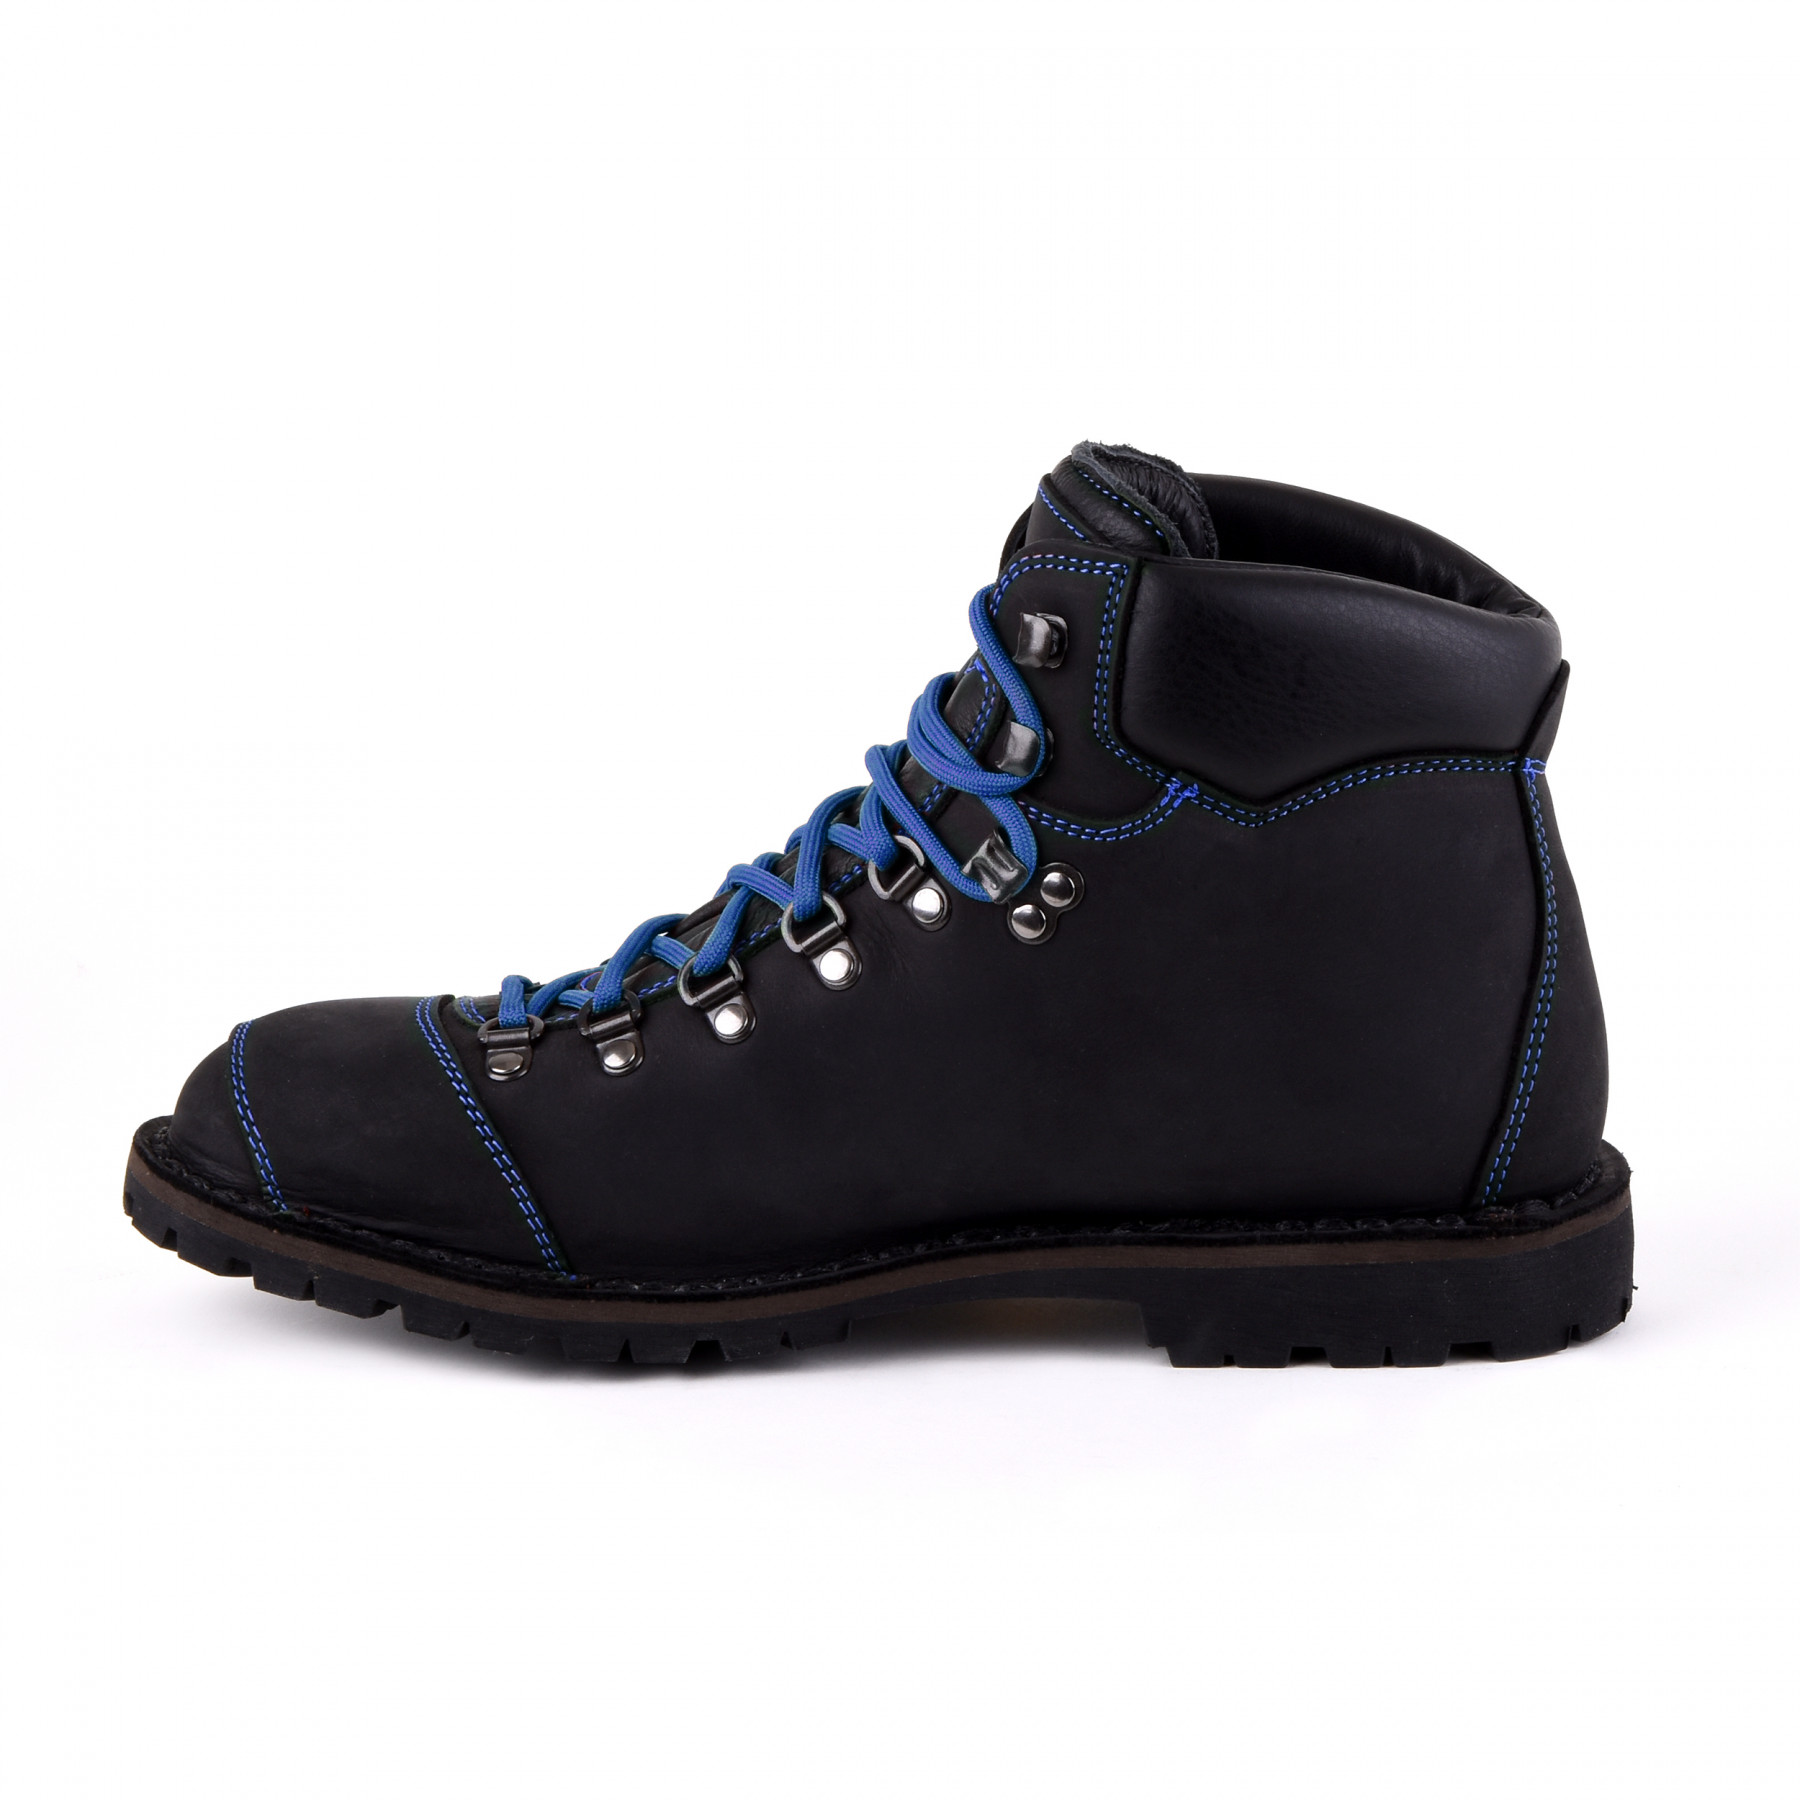 Biker Boot Adventure Denver Black, black ladies boot, blue stitching